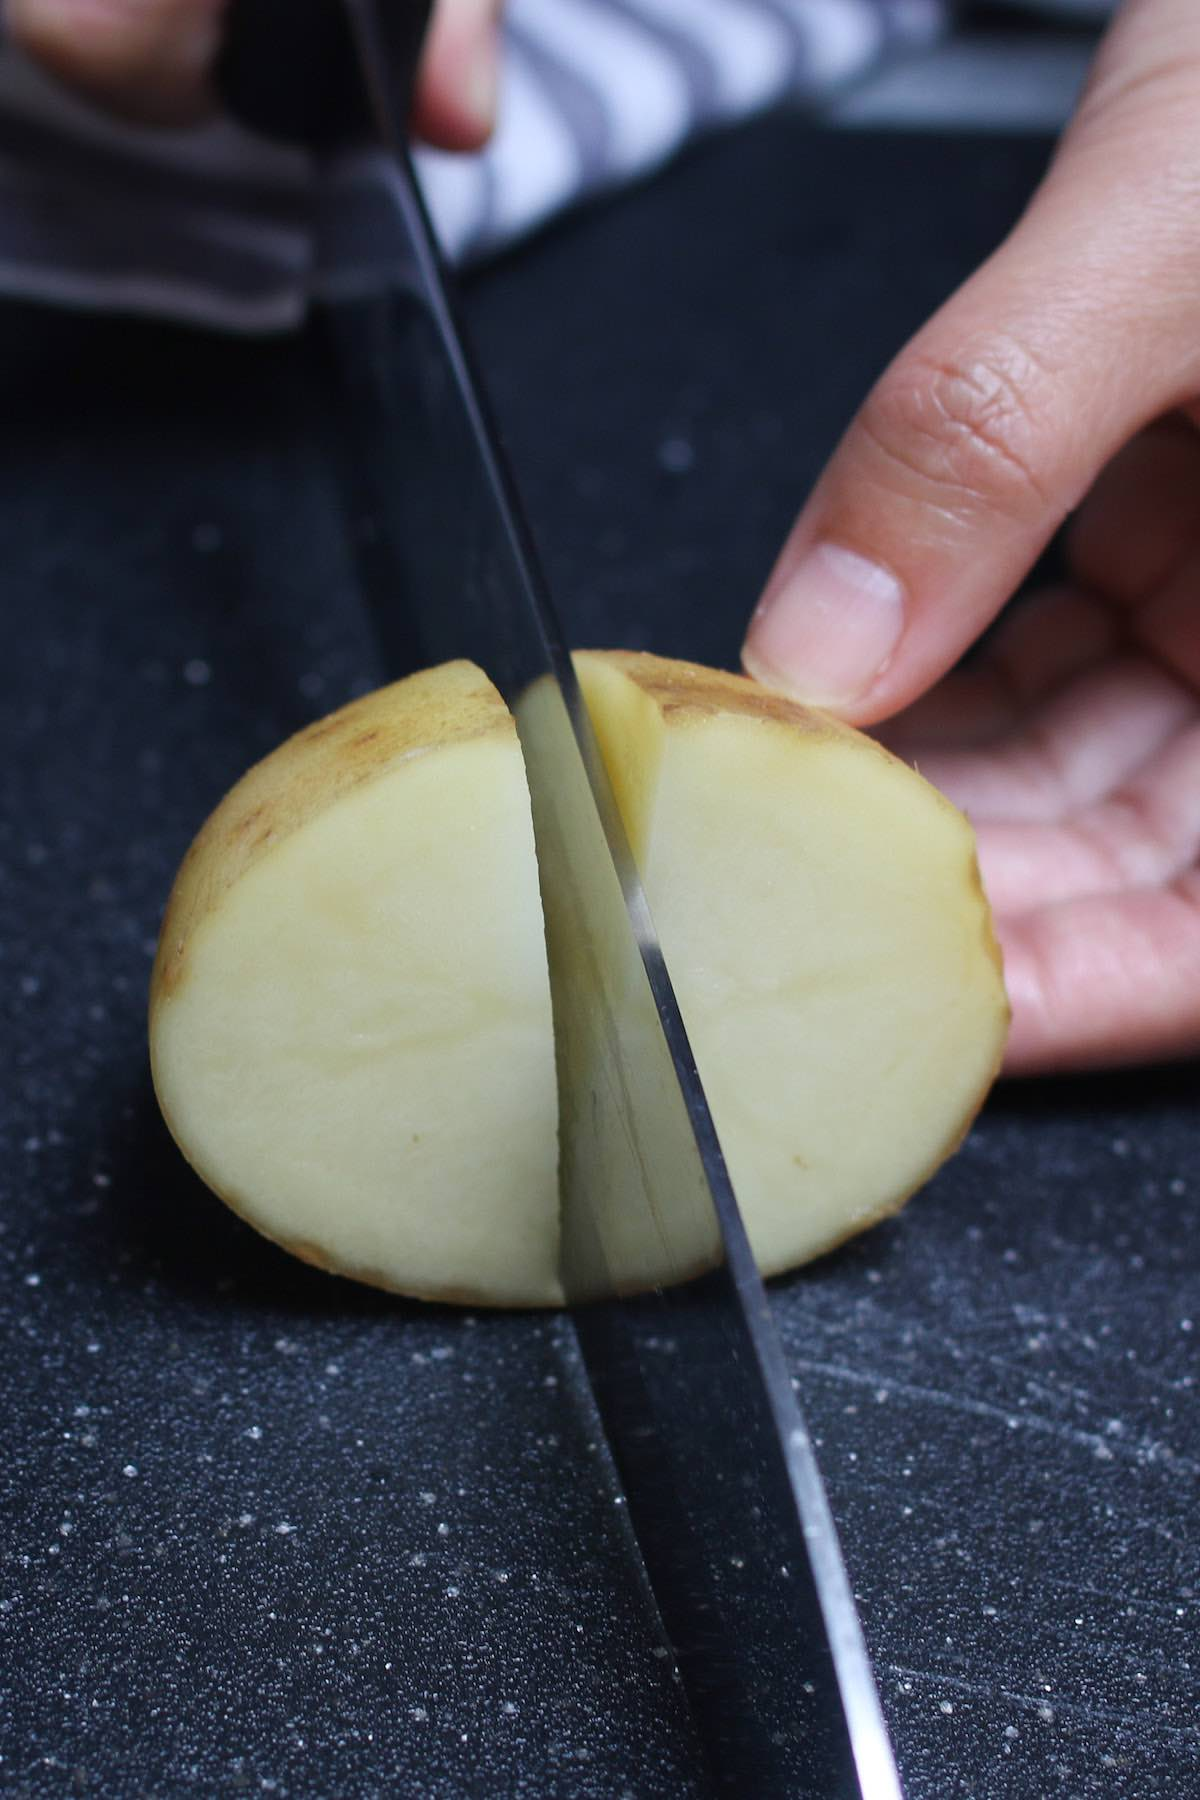 Cutting a raw white potato into quarters with a chef's knife for faster boiling